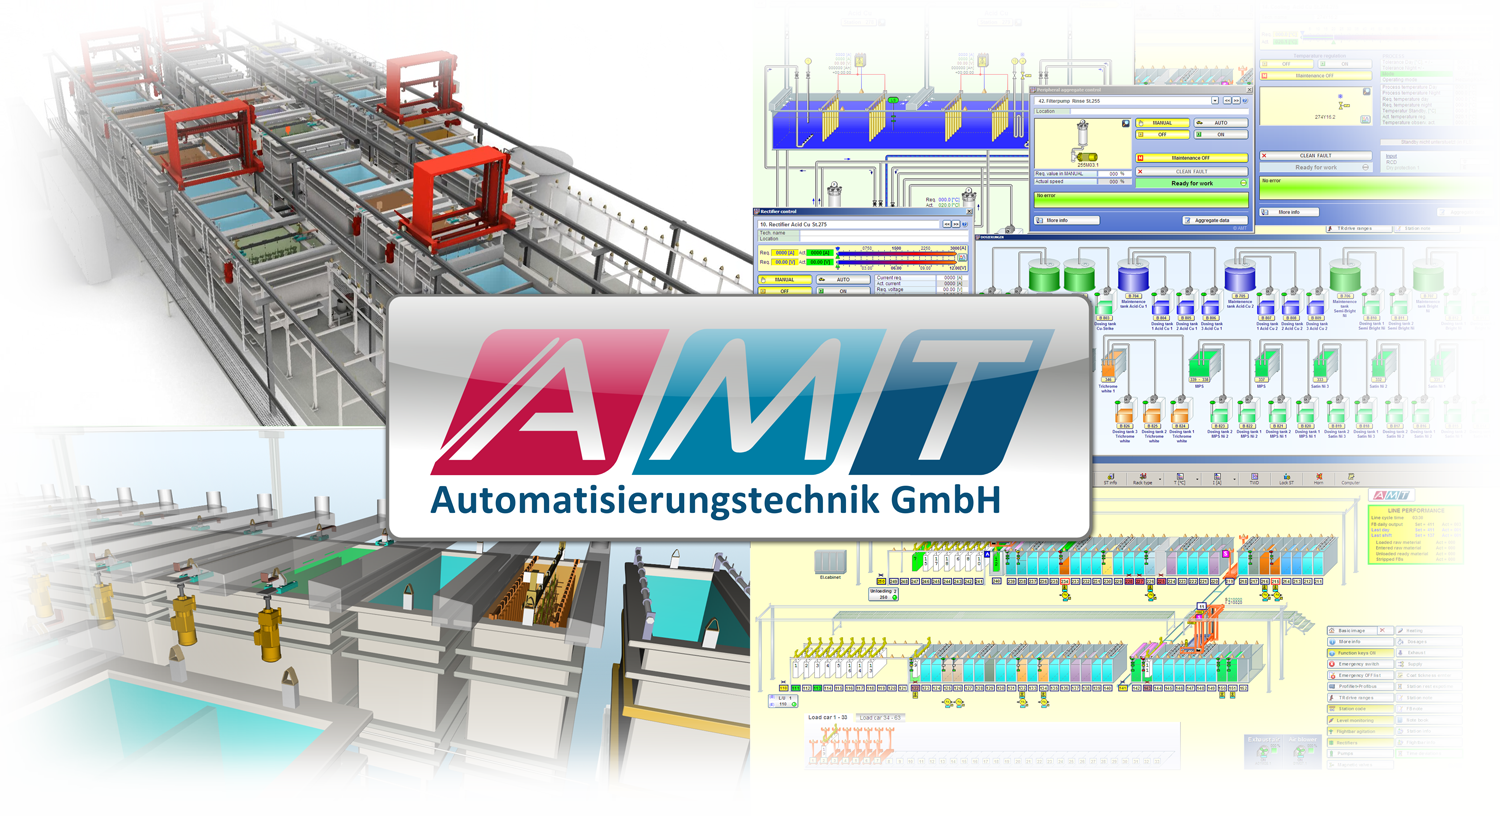 Info6t433p5z amt automatisierungstechnik gmbh as nobody thought of combining classical plc technology with pc technology our company brought to market the first control of this type incl high language publicscrutiny Image collections